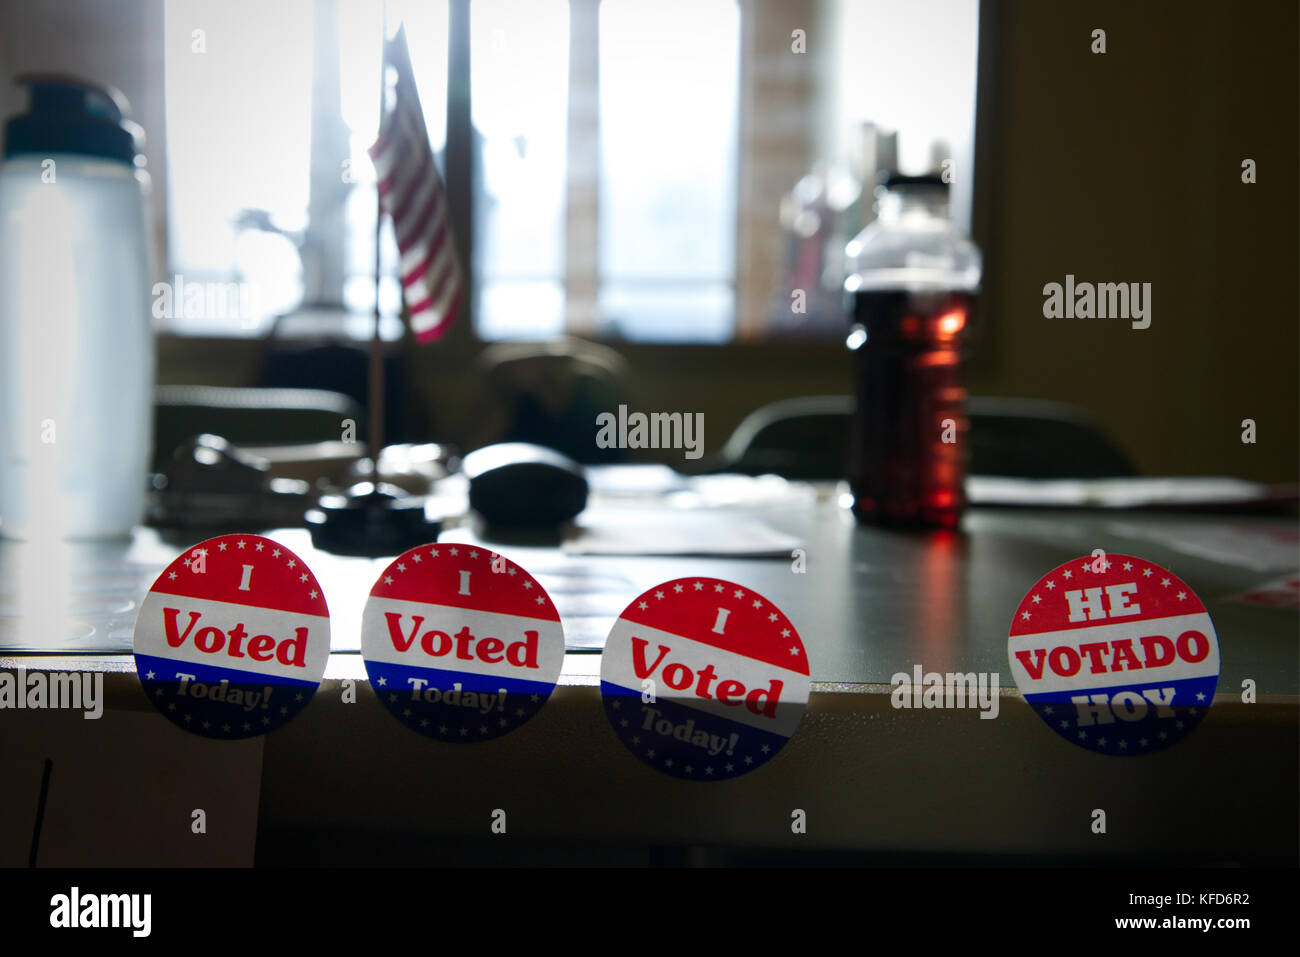 Stickers are offered to voters at a polling station, on Election Day. - Stock Image